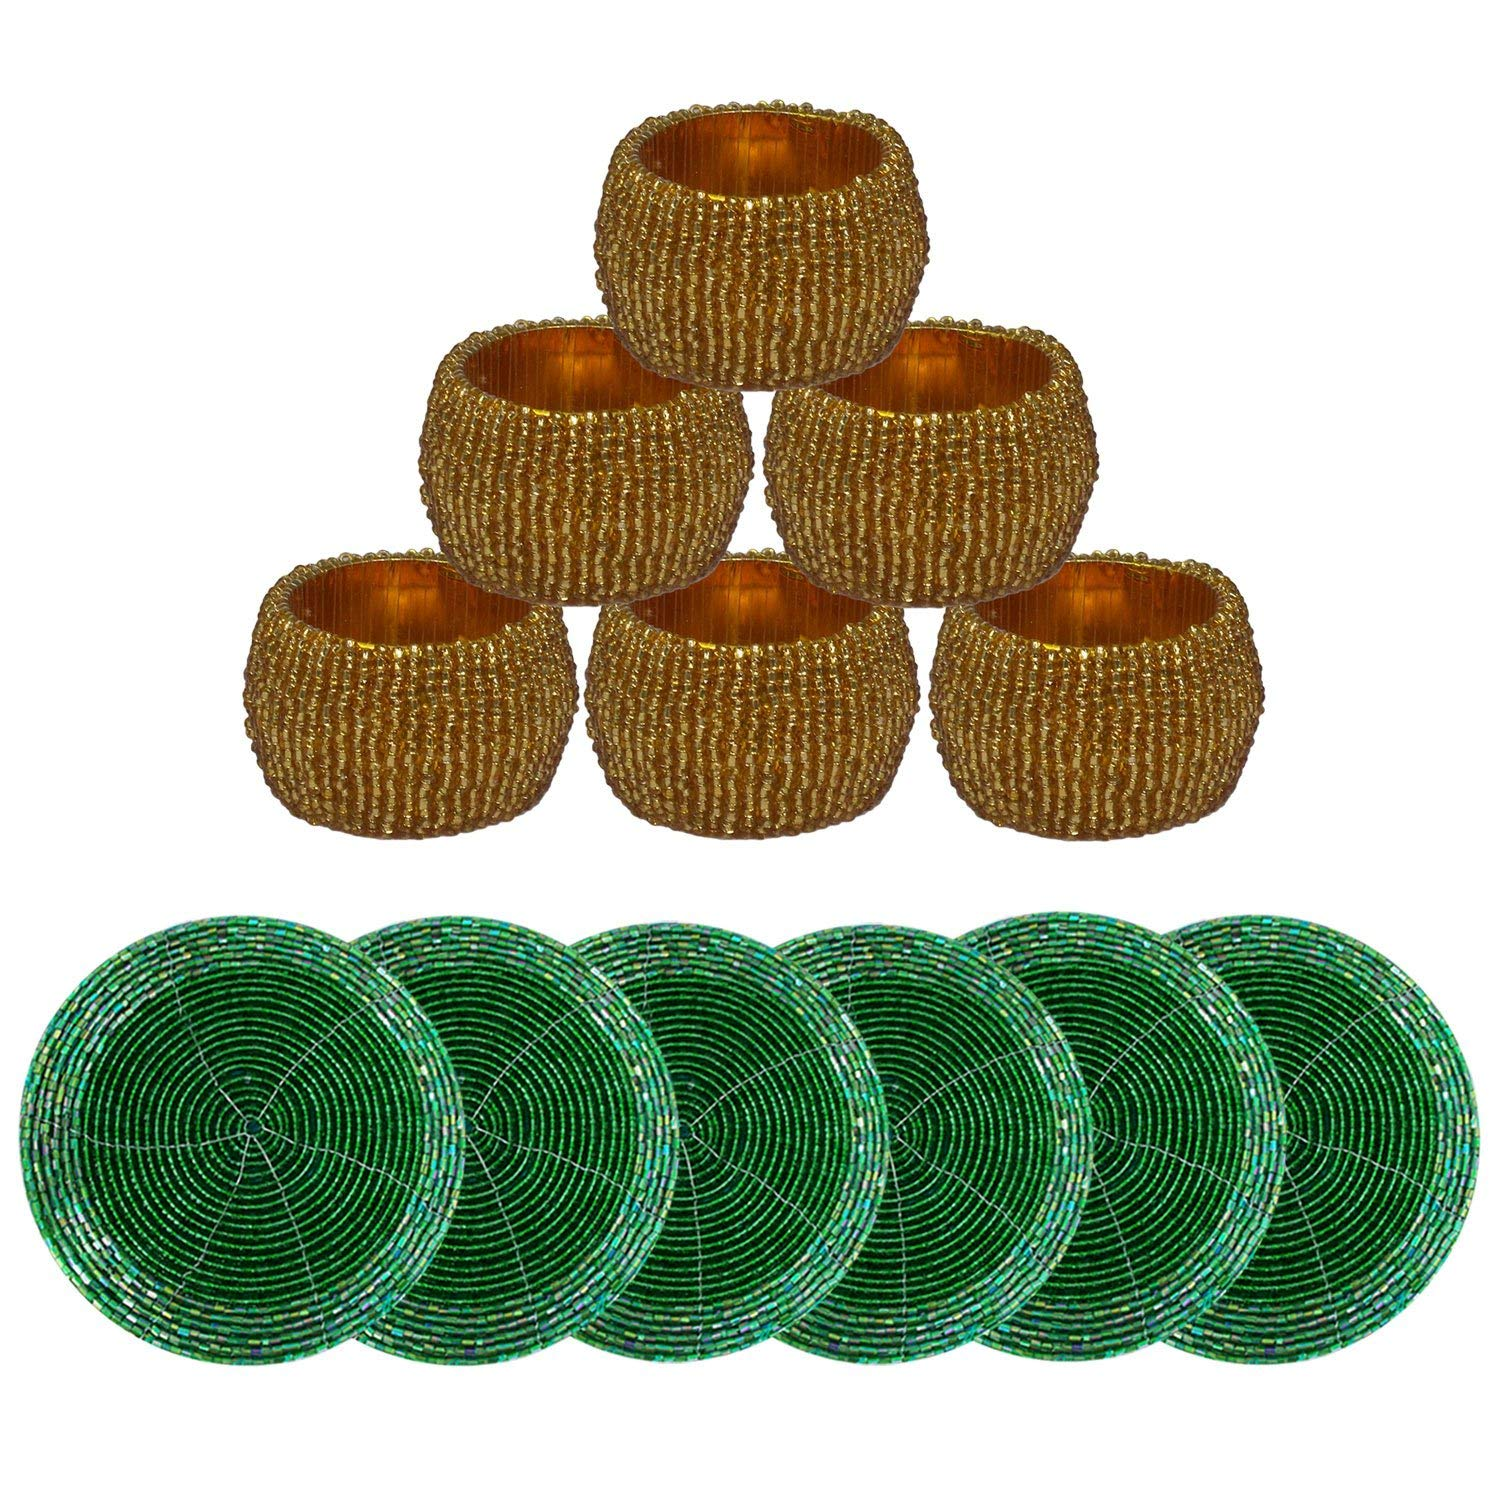 Indian Handmade Set of 6 Green Beaded Placemat Cup Coaster and 6 Golden Napkin Rings - Dining Accessories